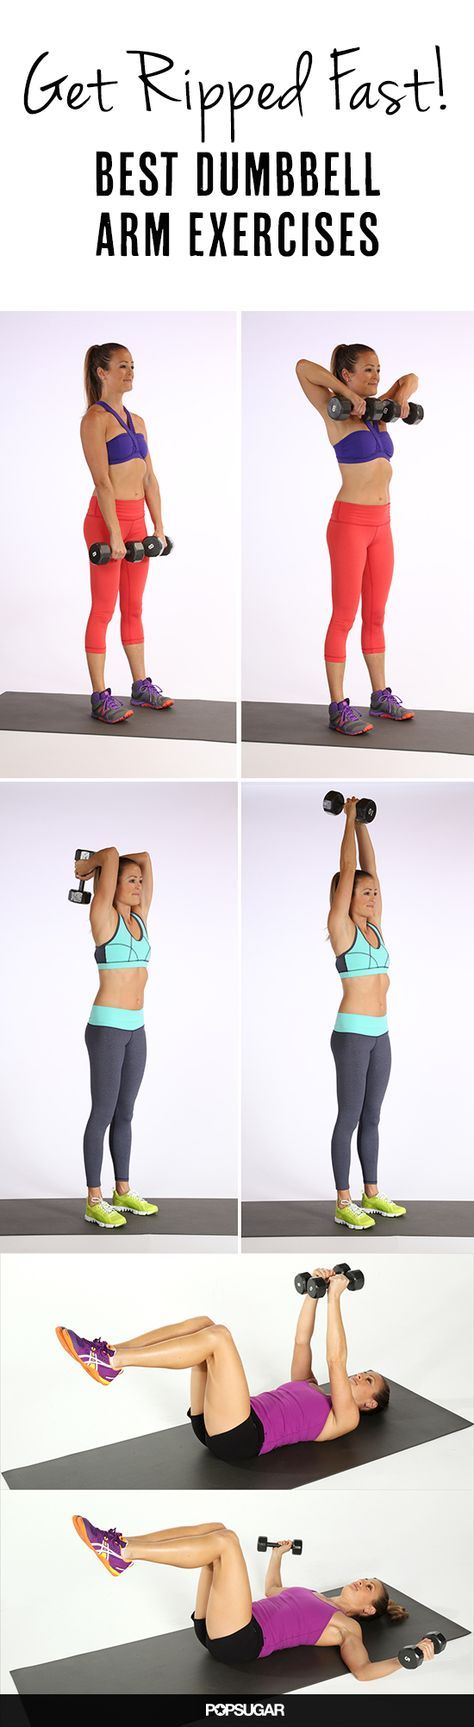 Dumbbell arm exercises